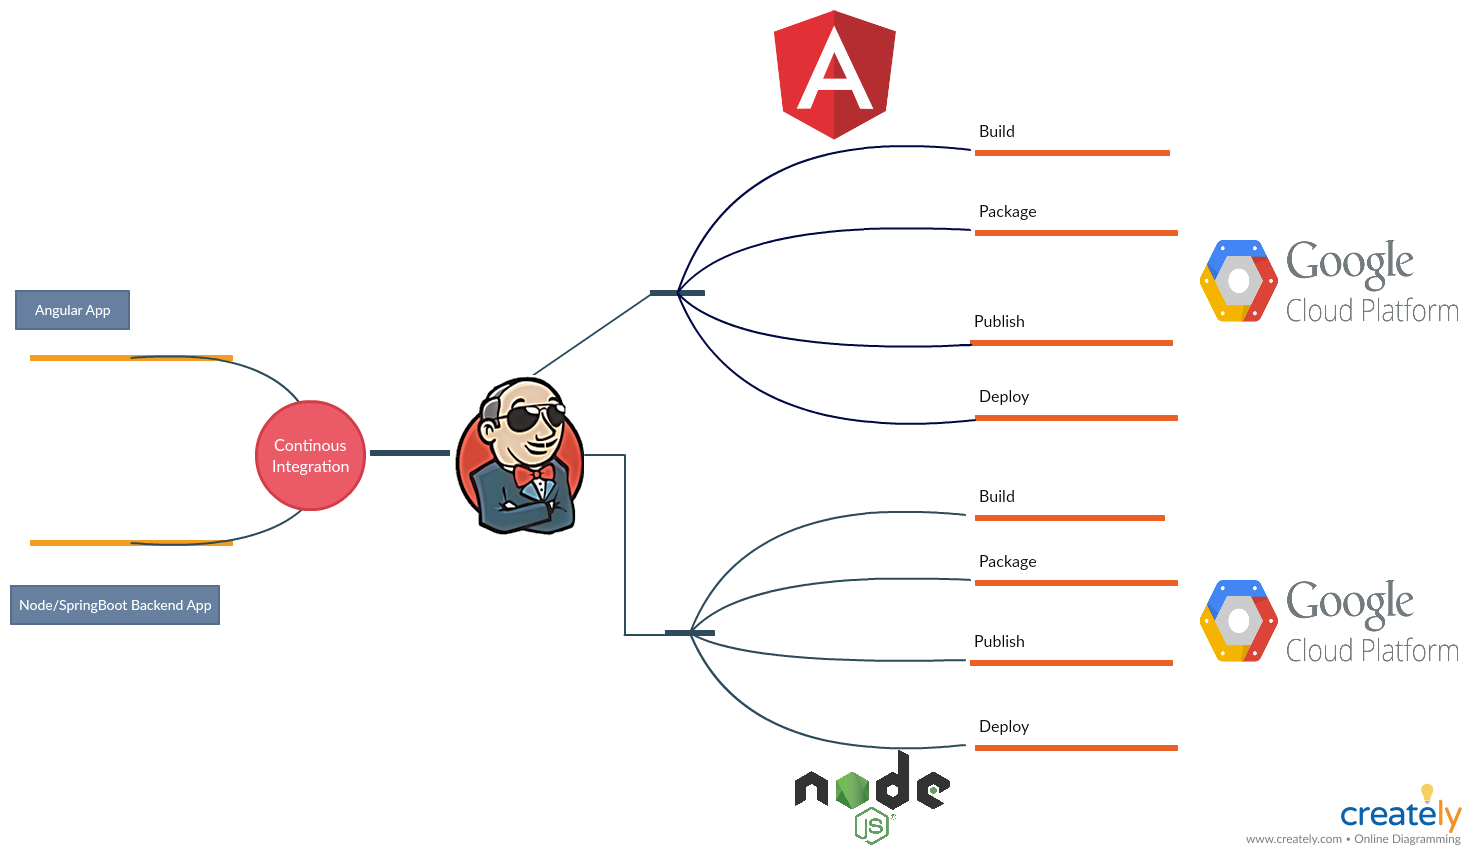 Jenkins Pipeline to deploy Angular App to AppEngine GCP